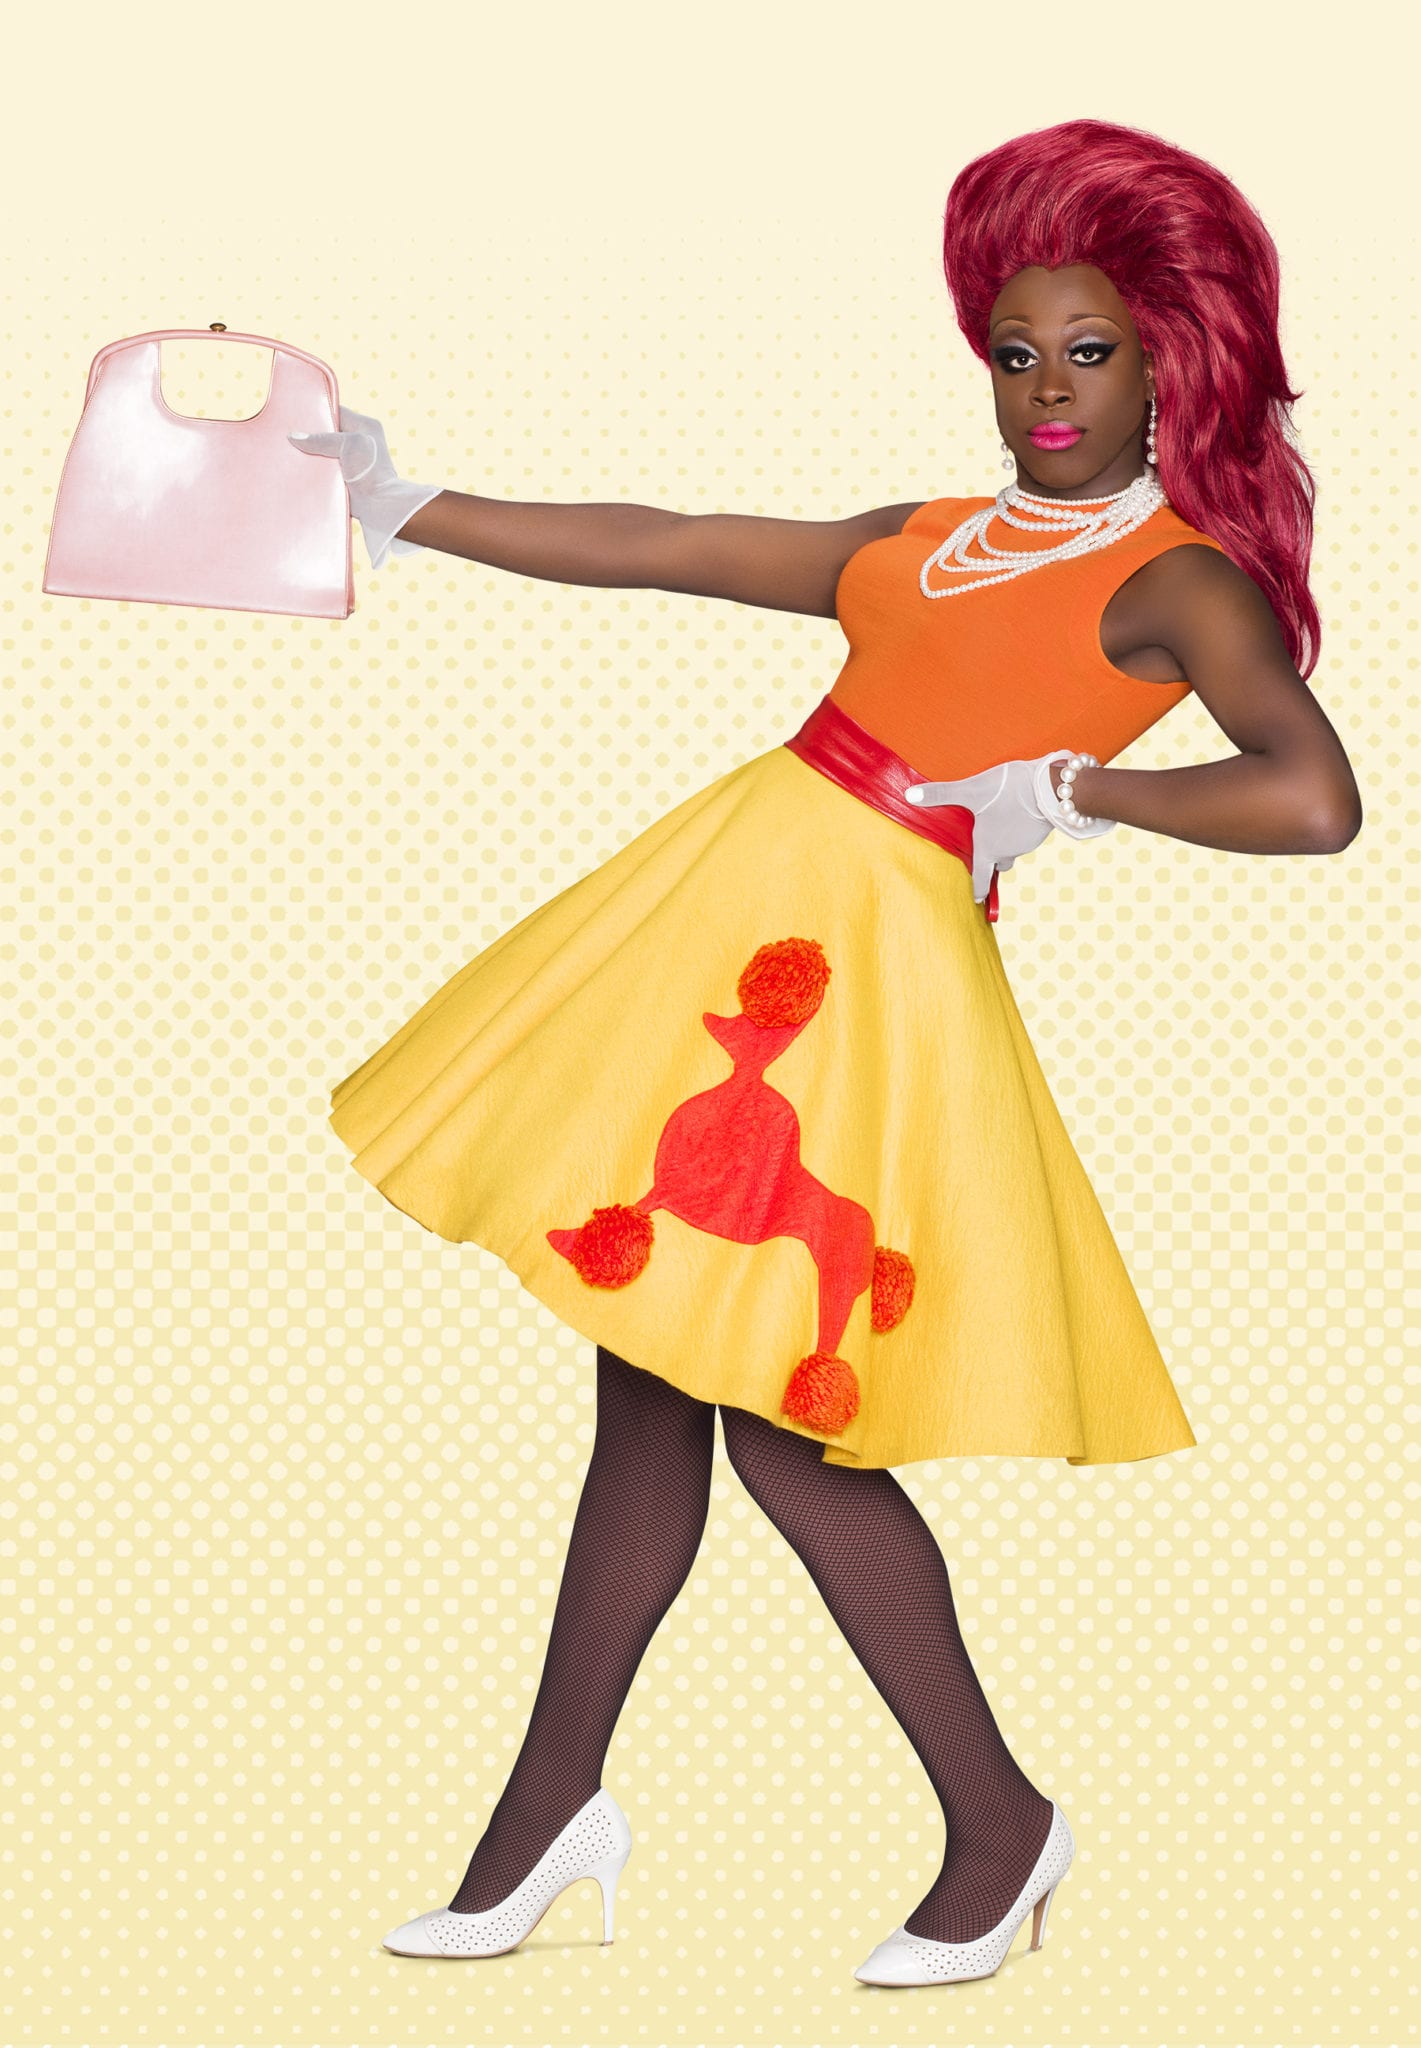 Bob the Drag Queen is a front-runner in this season's Rupaul's Drag Race. (Photo by Mathu Anderson)